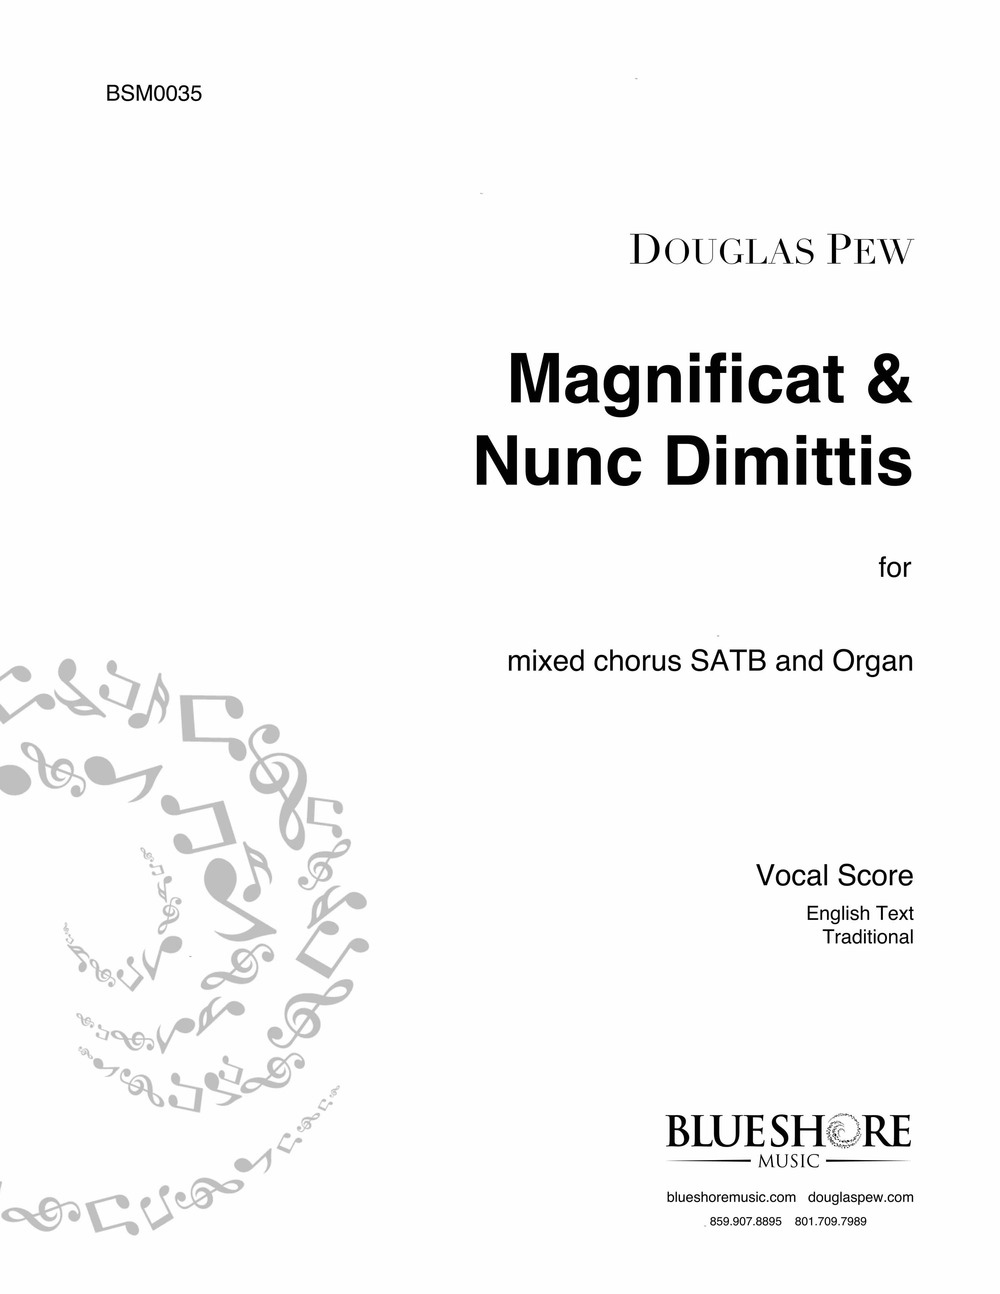 Magnificat & Nunc Dimittis (St. Thomas Service), for Mixed Chorus and Organ